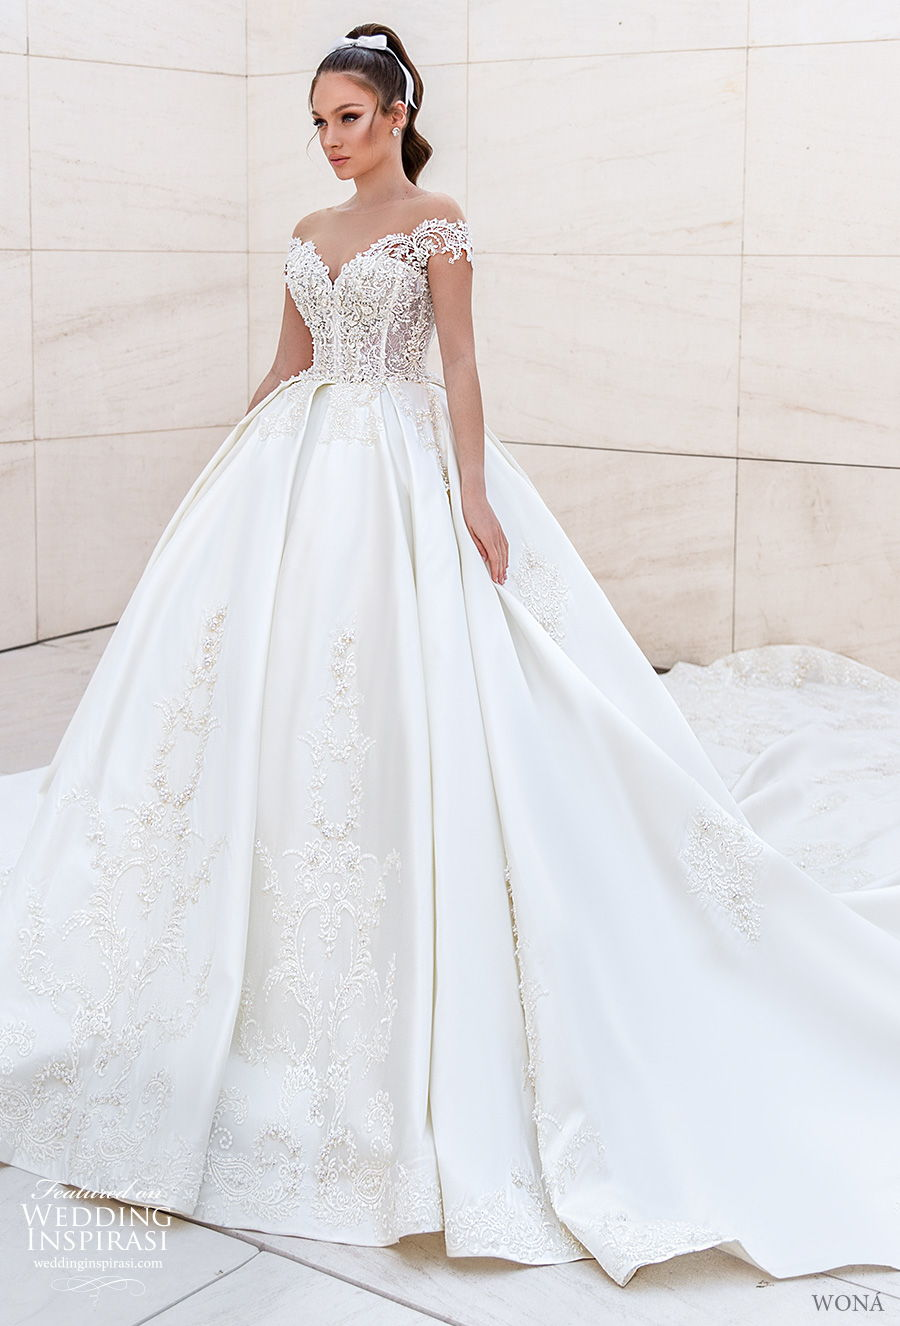 wona 2020 diva bridal short sleeves sweetheart neckline heavily embellished bodice princess ball gown wedding dress v back royal train (13) mv